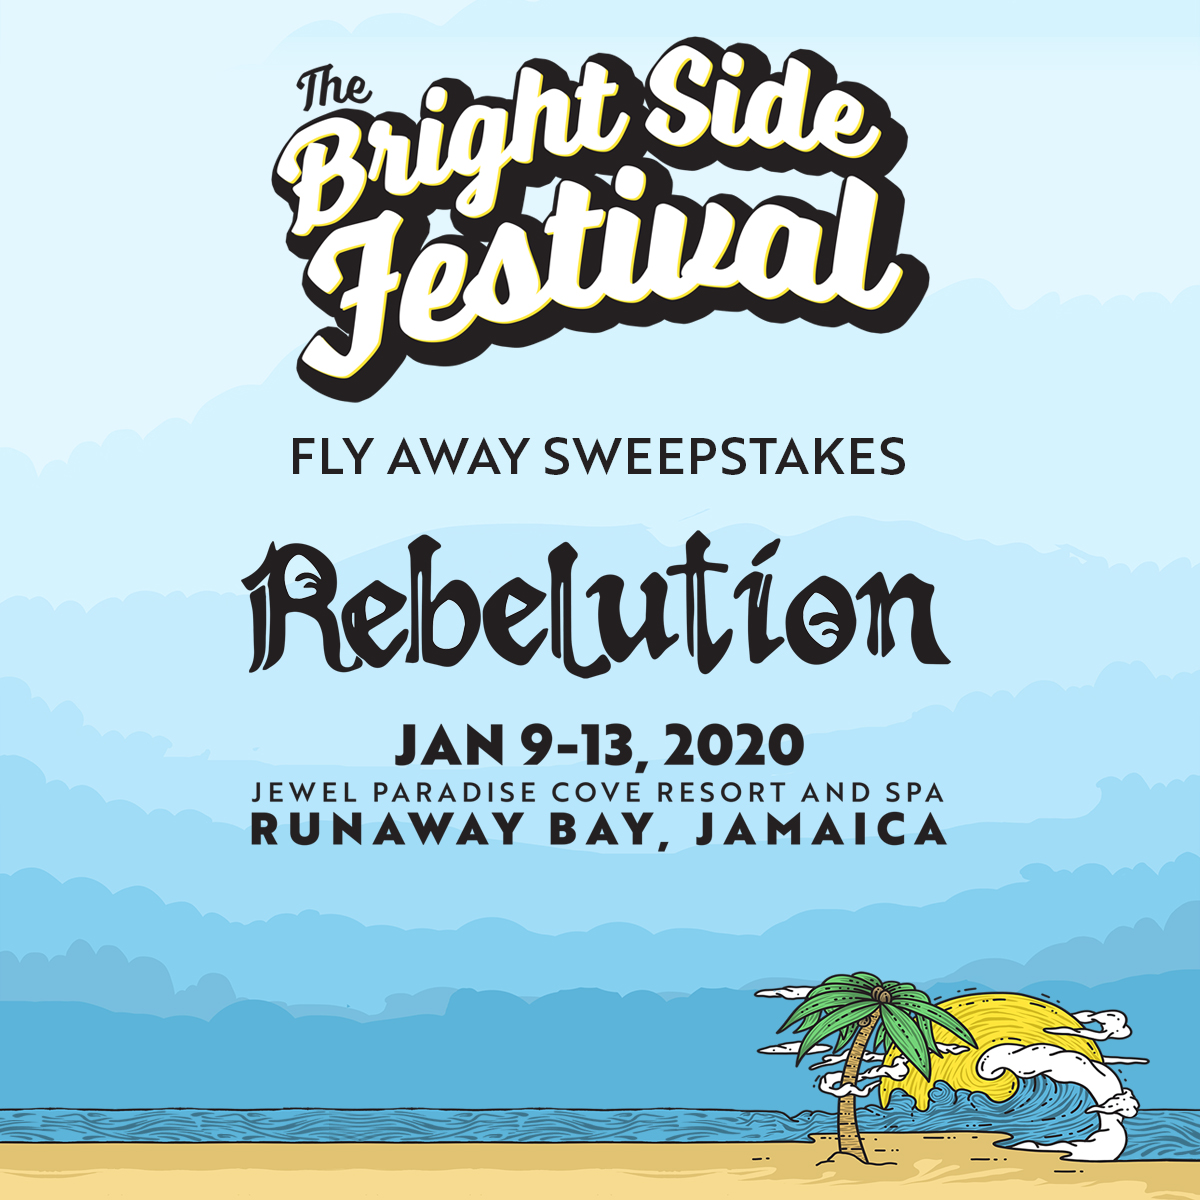 Rebelution - The Bright Side Festival Fly Away Sweepstakes